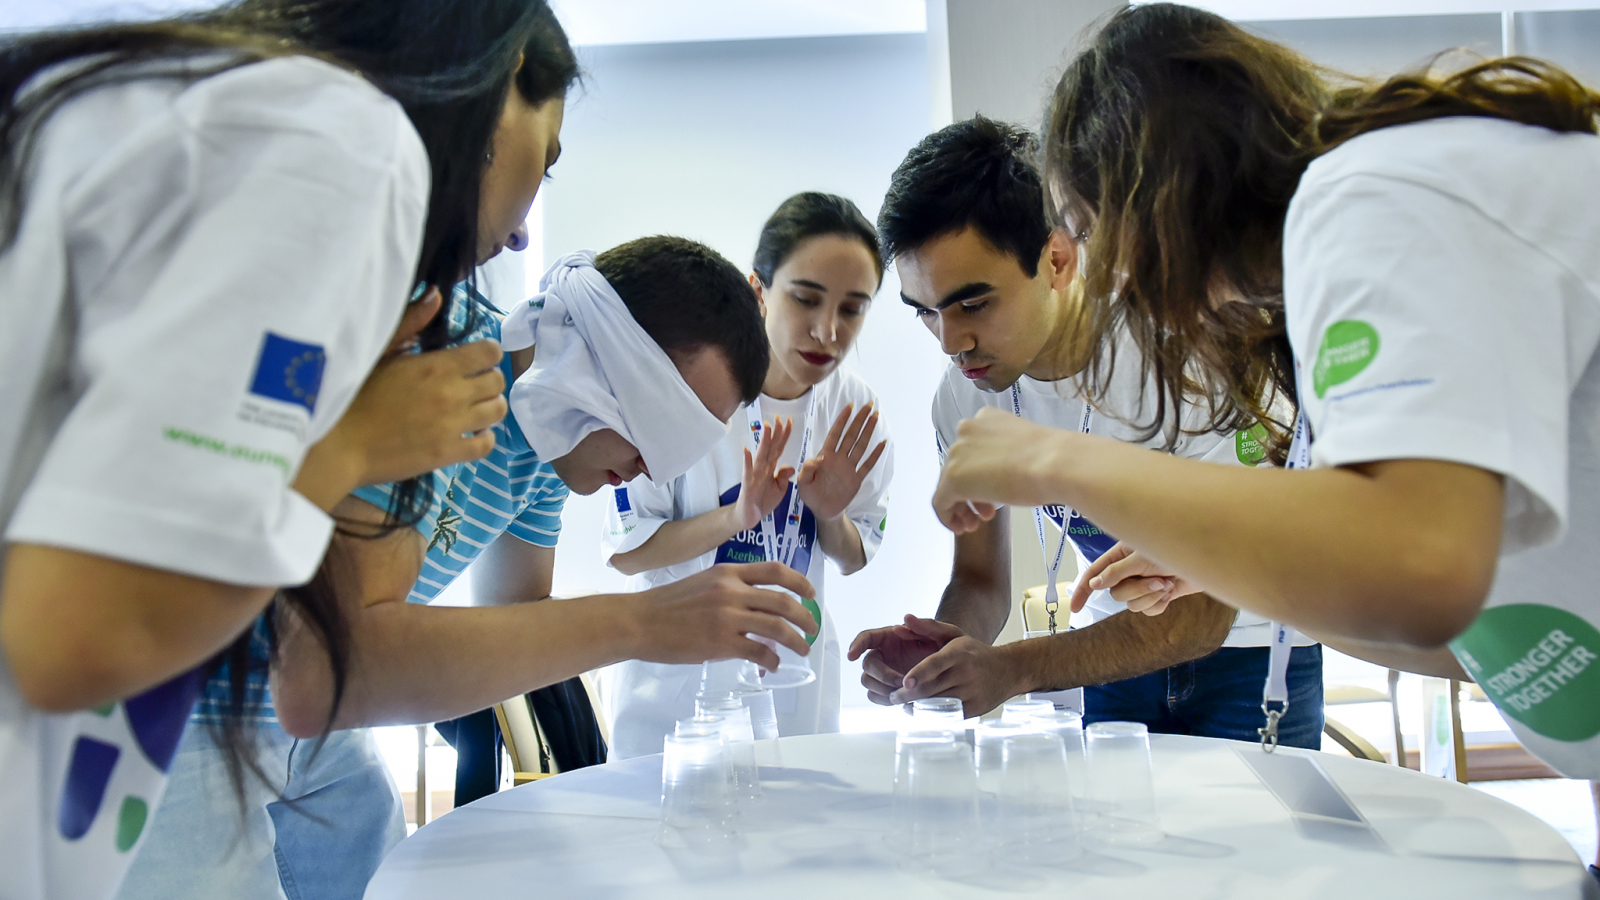 EuroSchool 2018 students participate in an interactive exercise